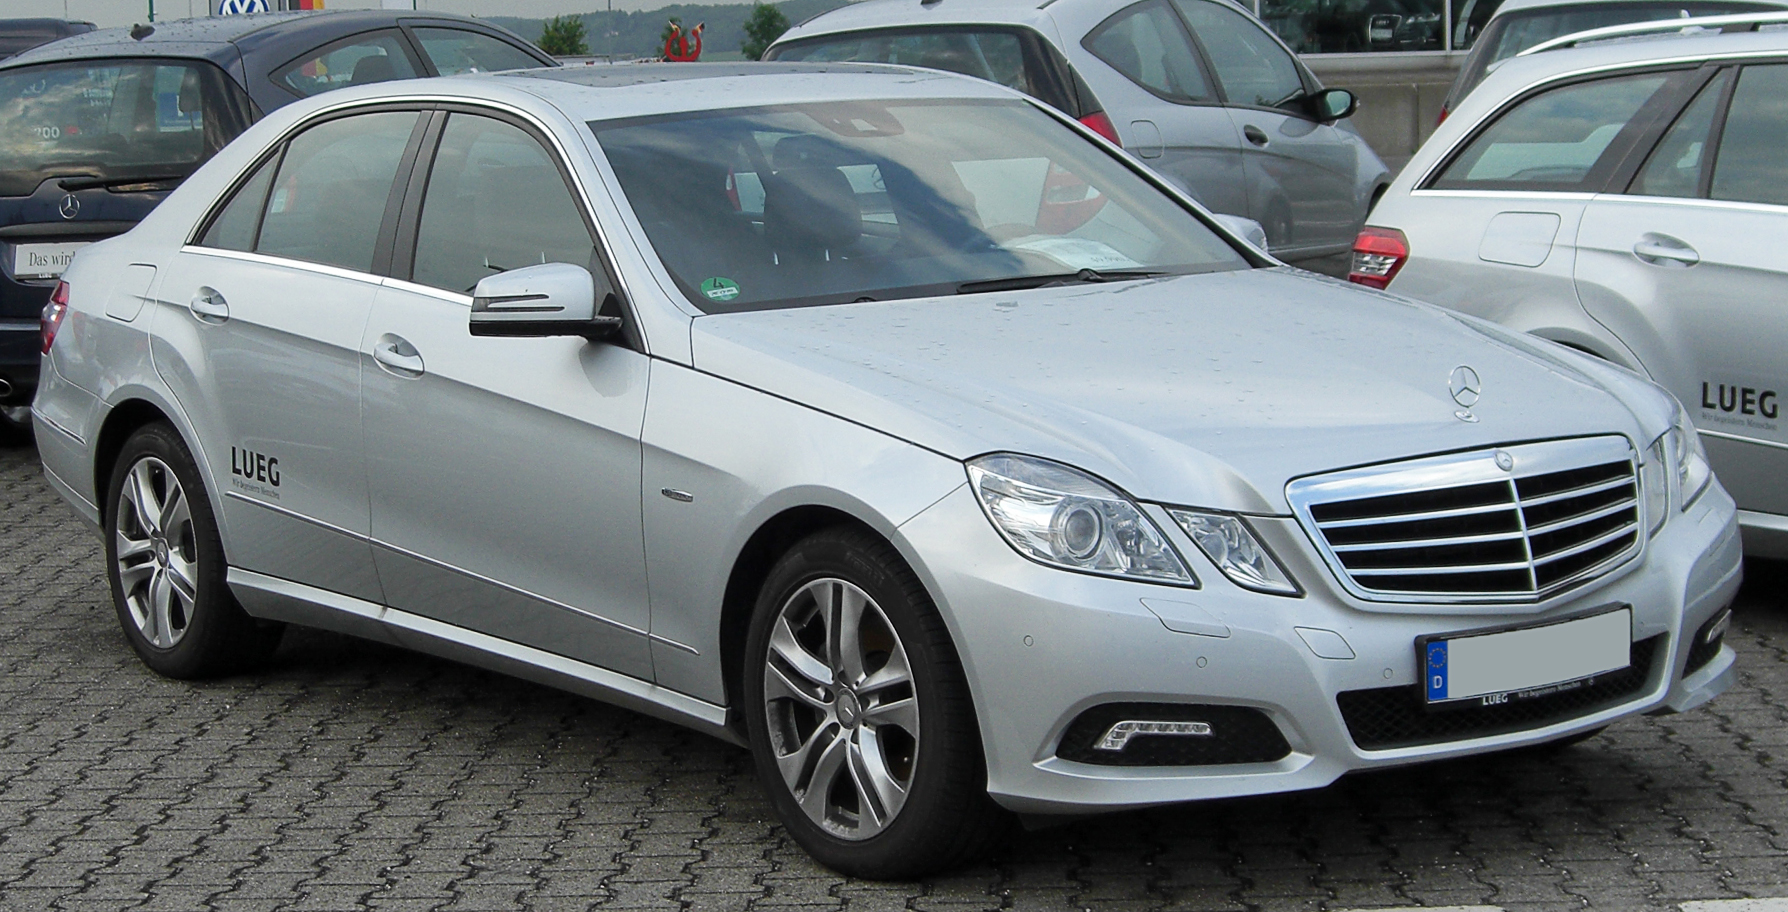 Mercedes-Benz E250 CDI review | CarsGuide